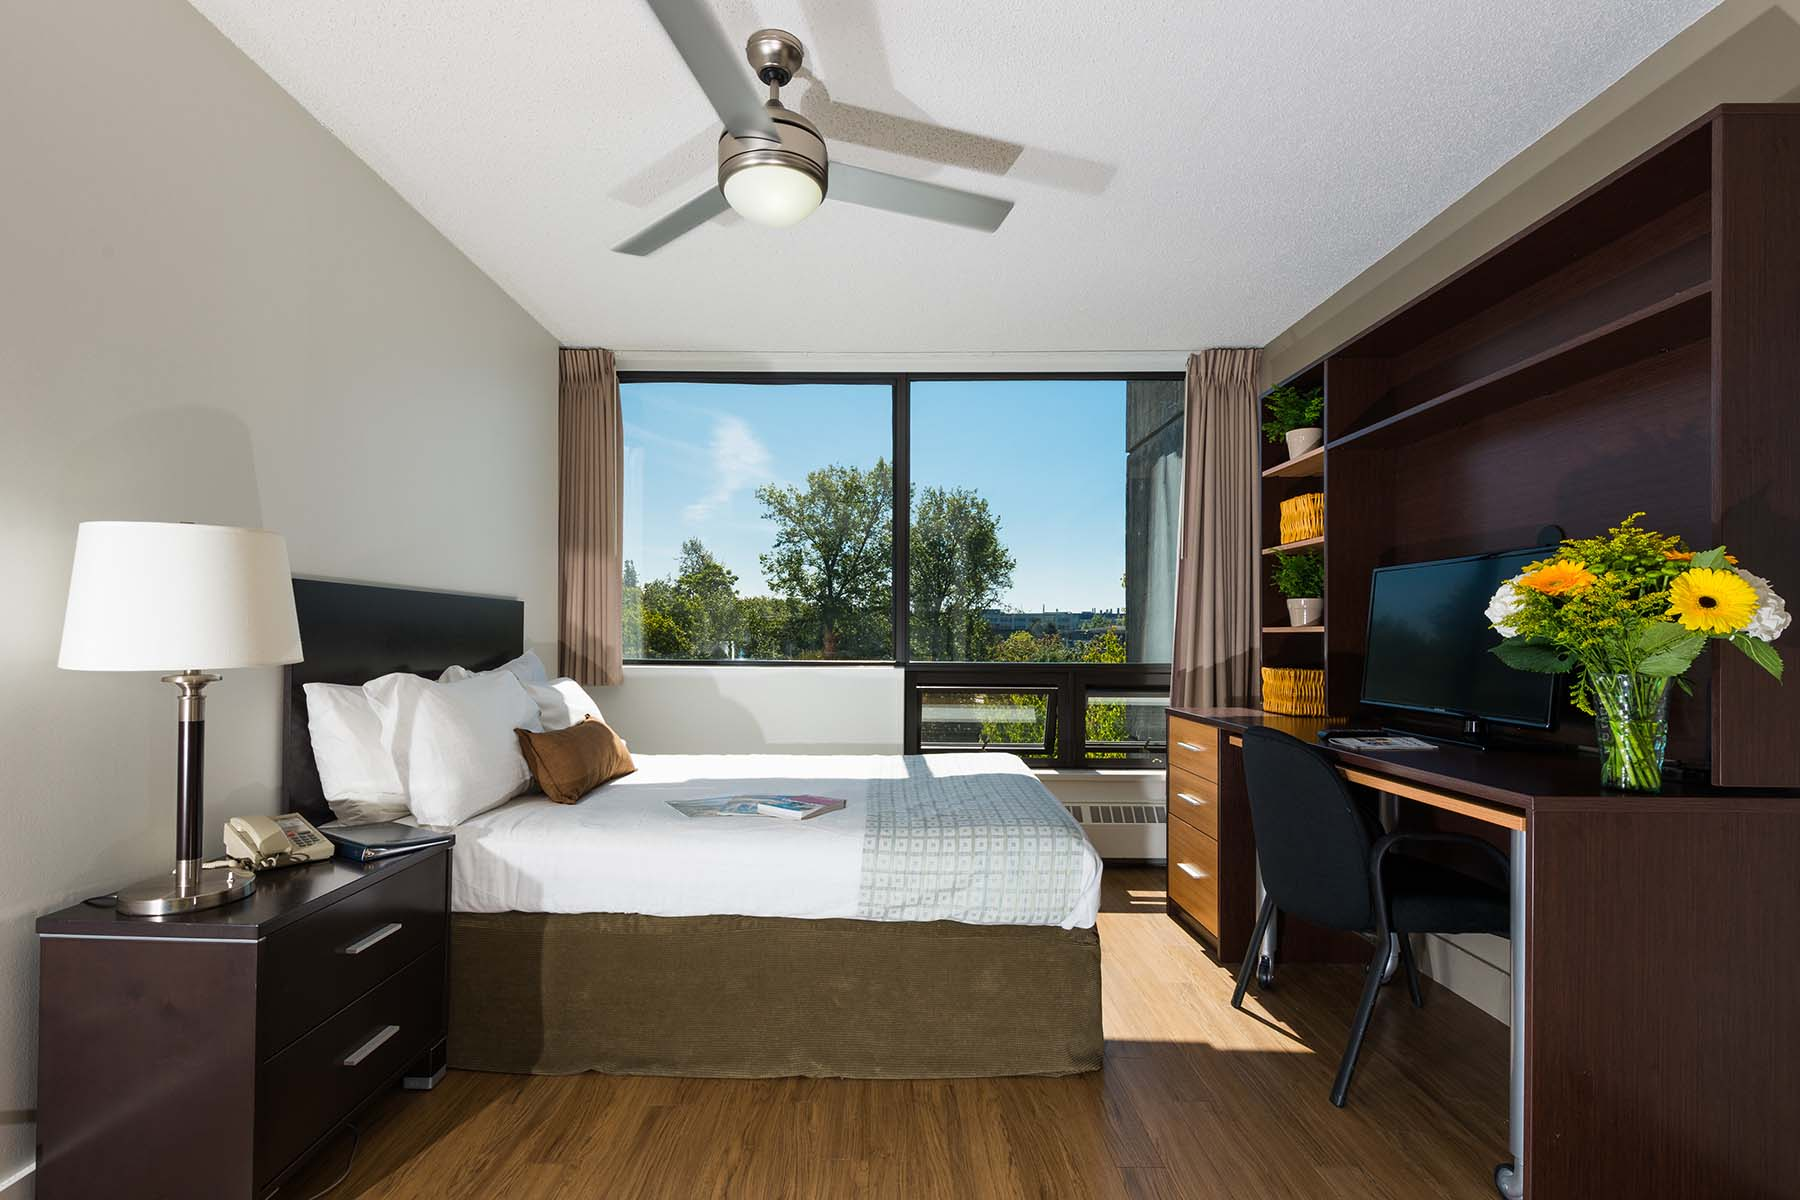 Daily Room Rate Is